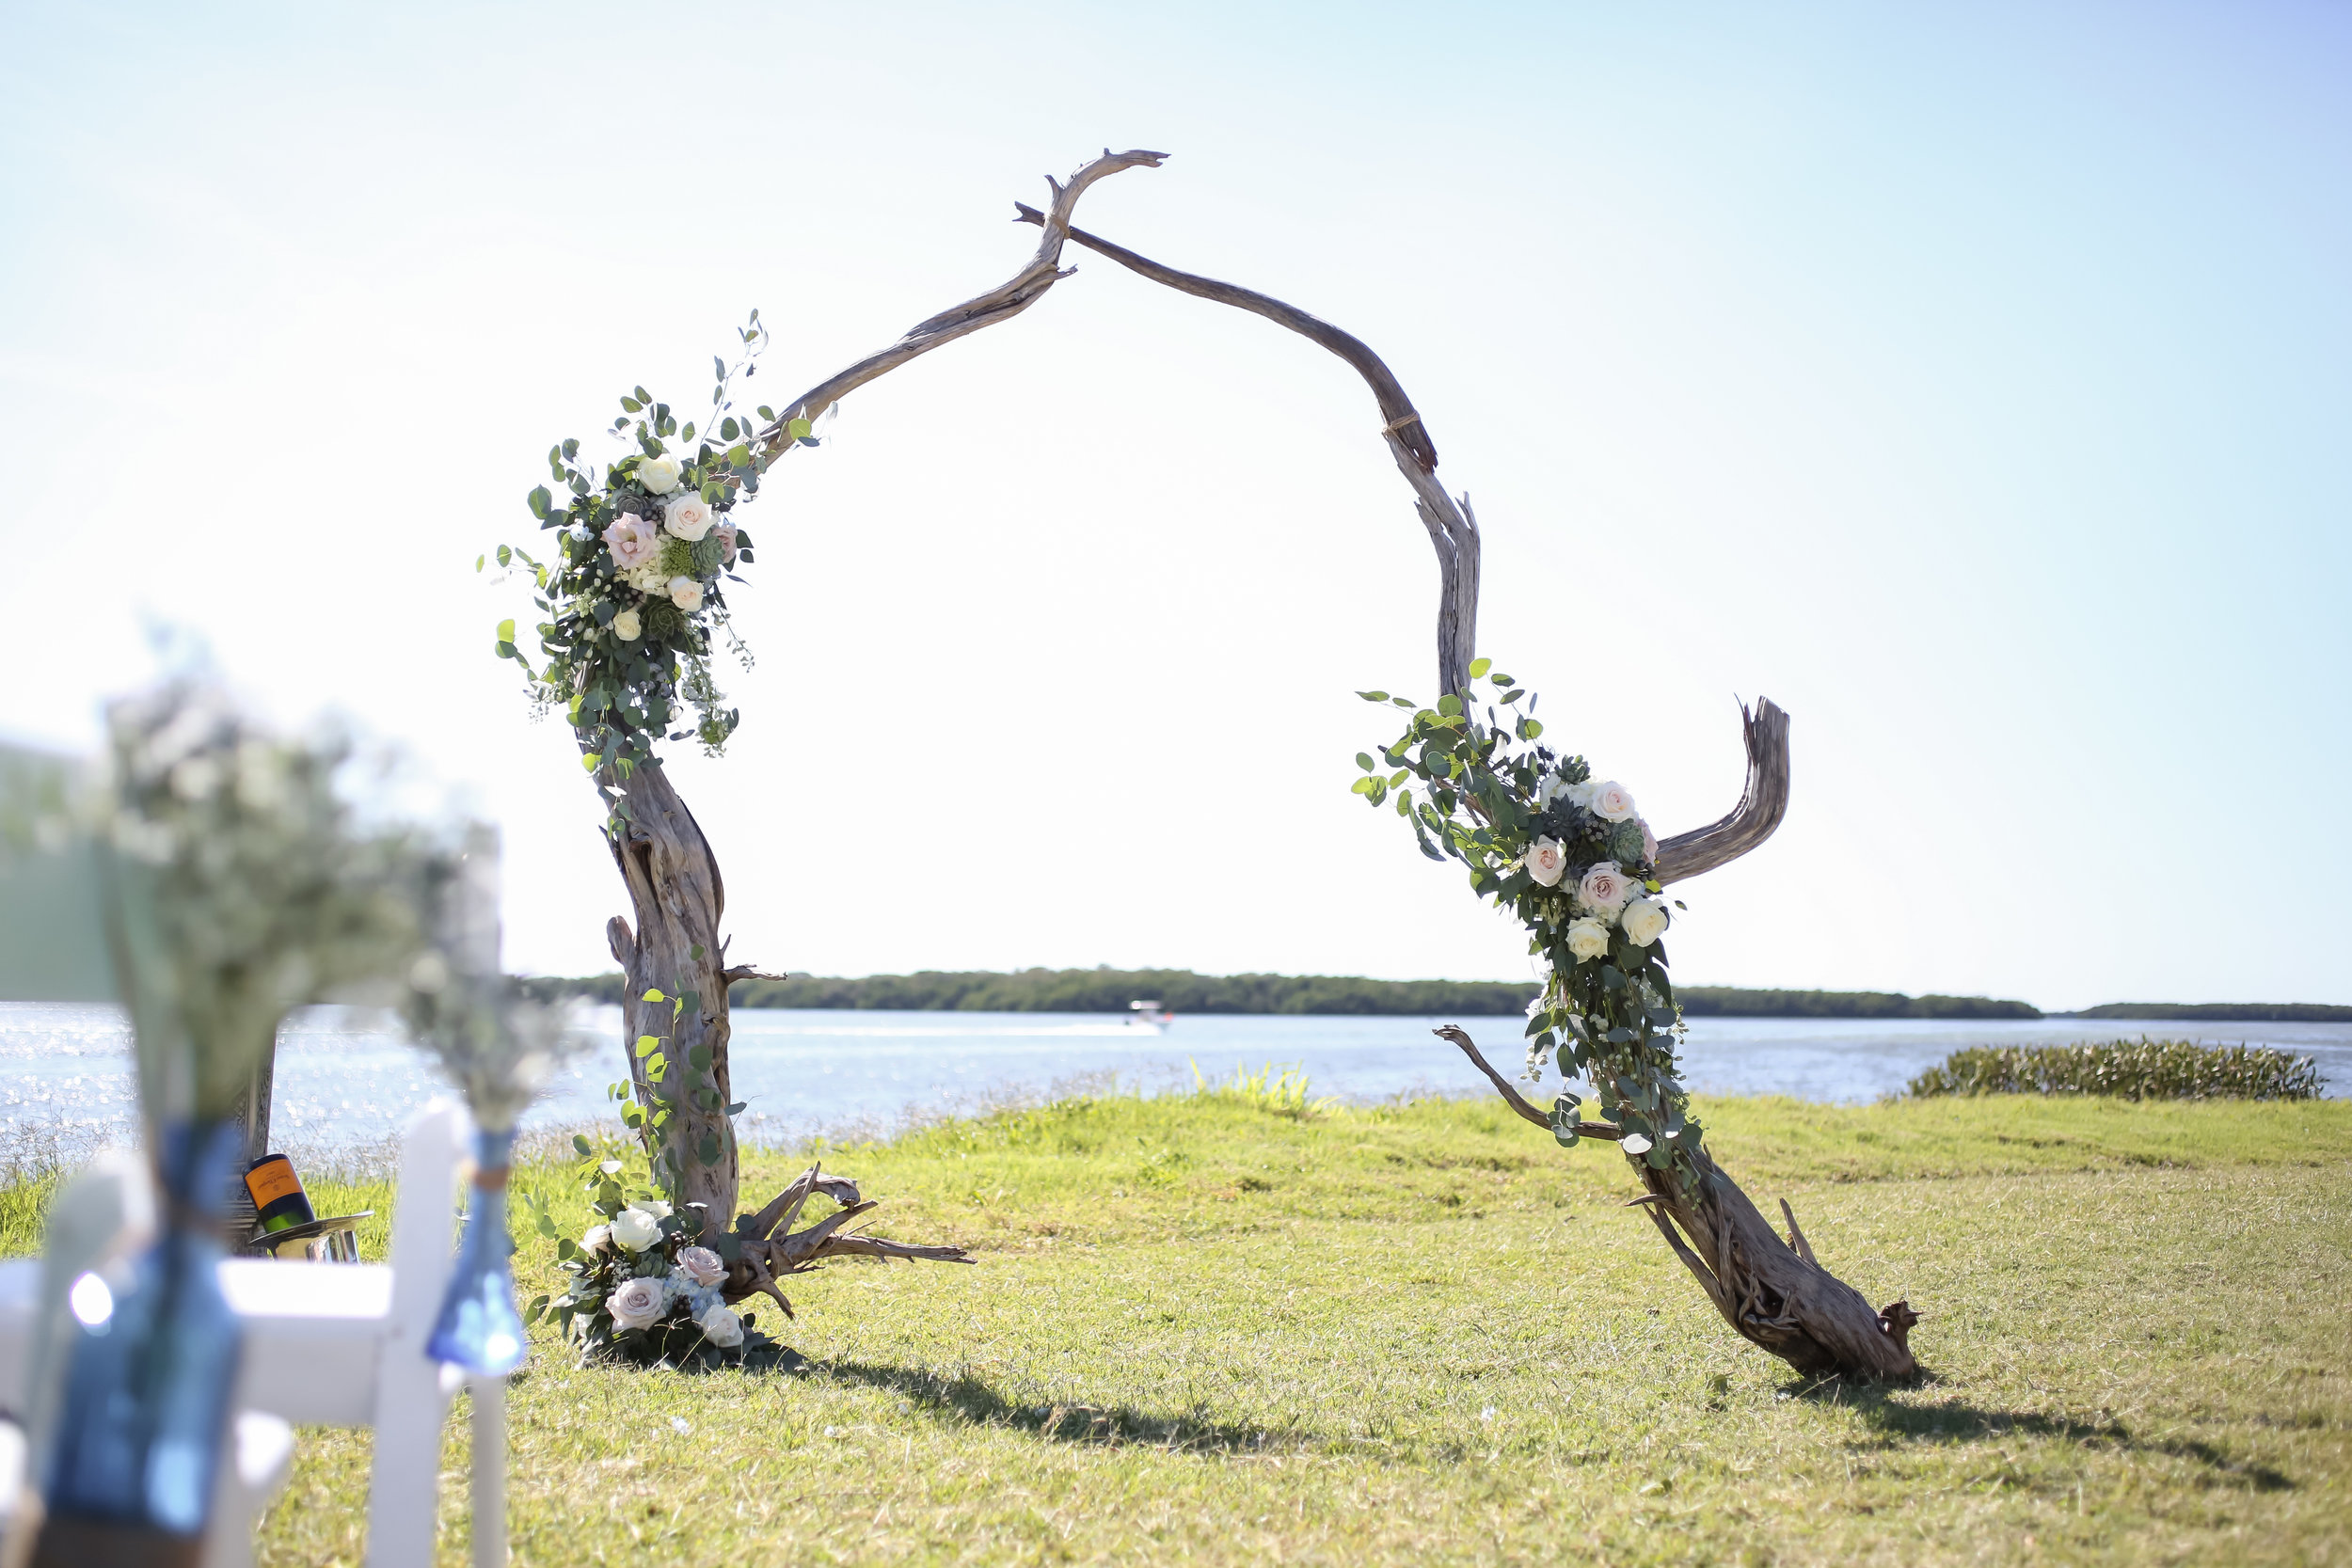 The couple exchanged vows in front of a jaw-dropping arch made from large driftwood branches accented with flora.